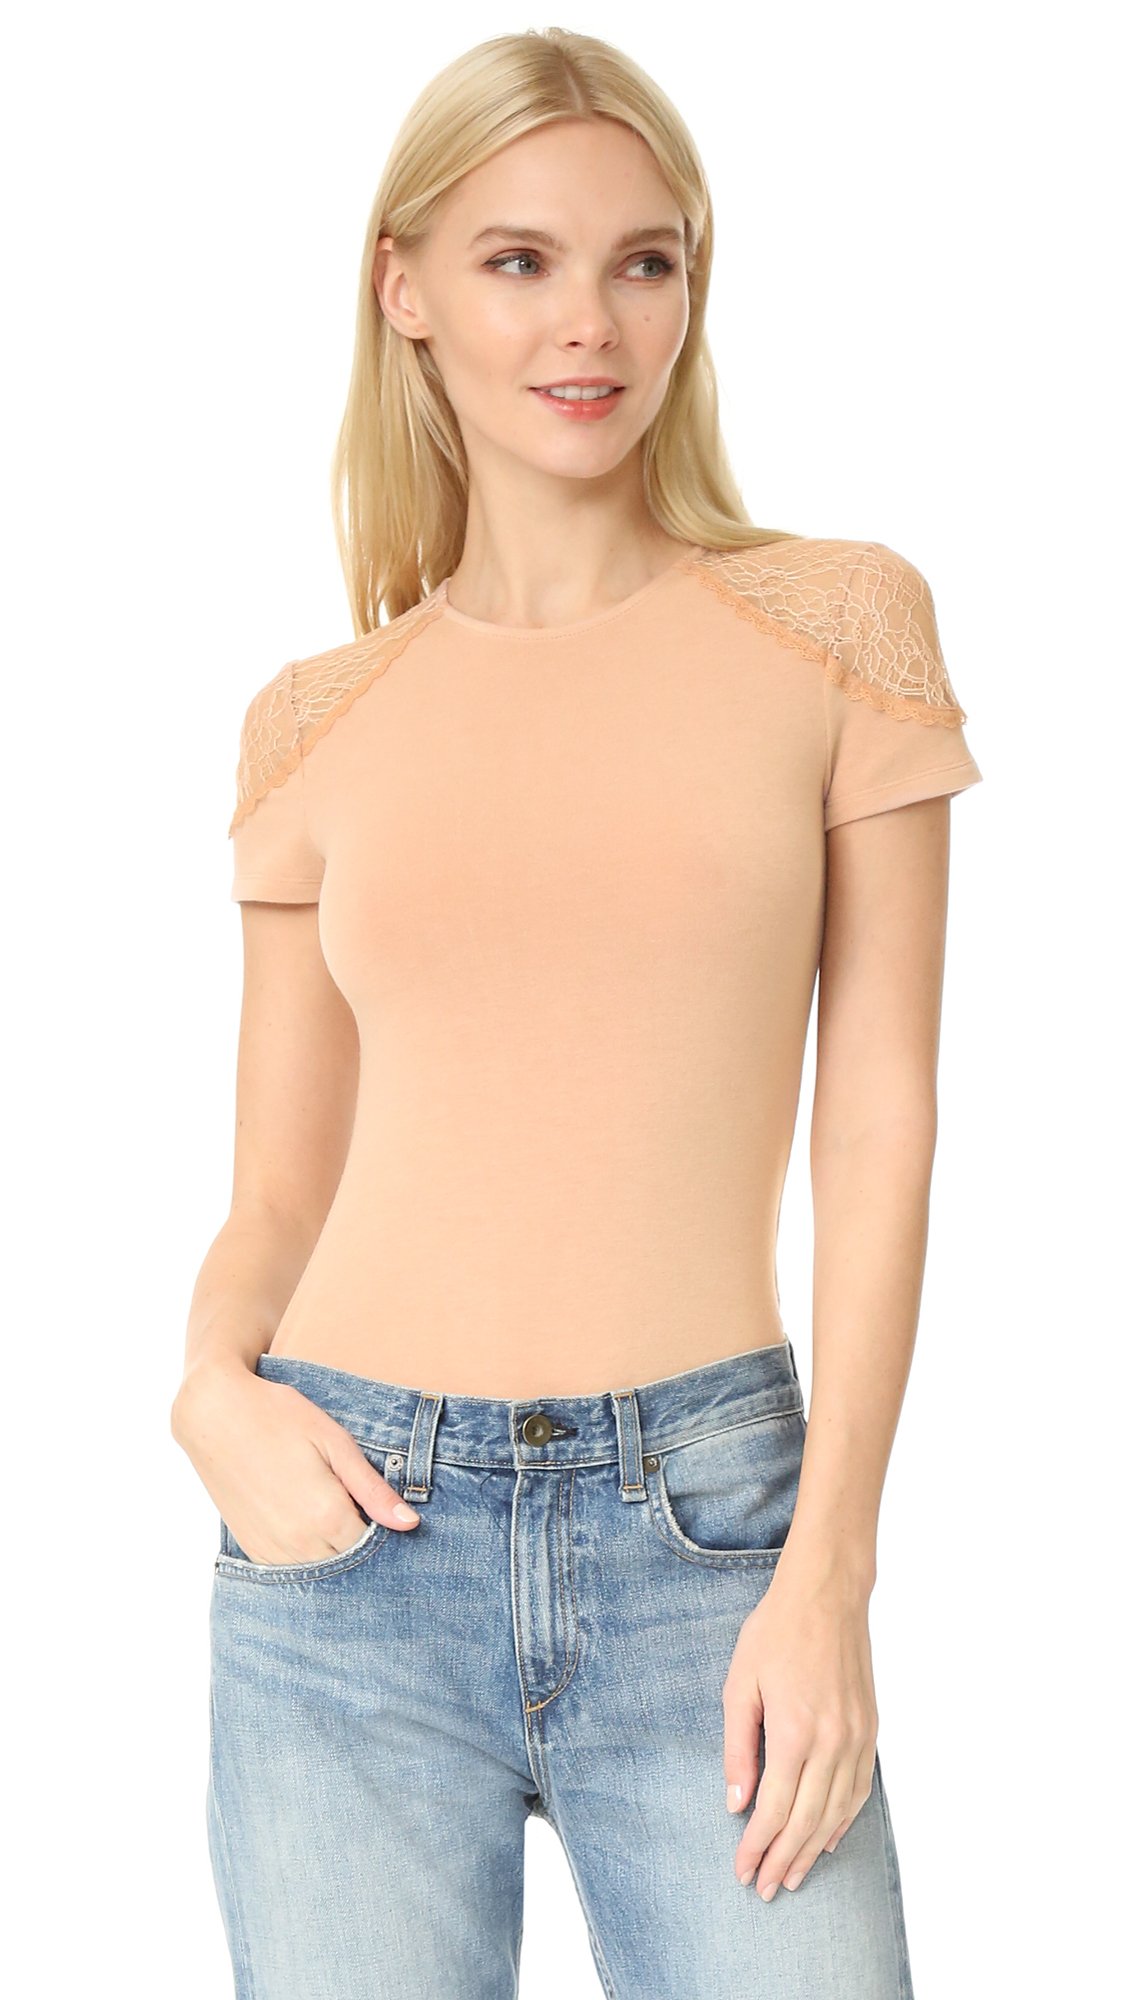 Alice + Olivia Lux Lace Shoulder Top - Dusty Pink at Shopbop